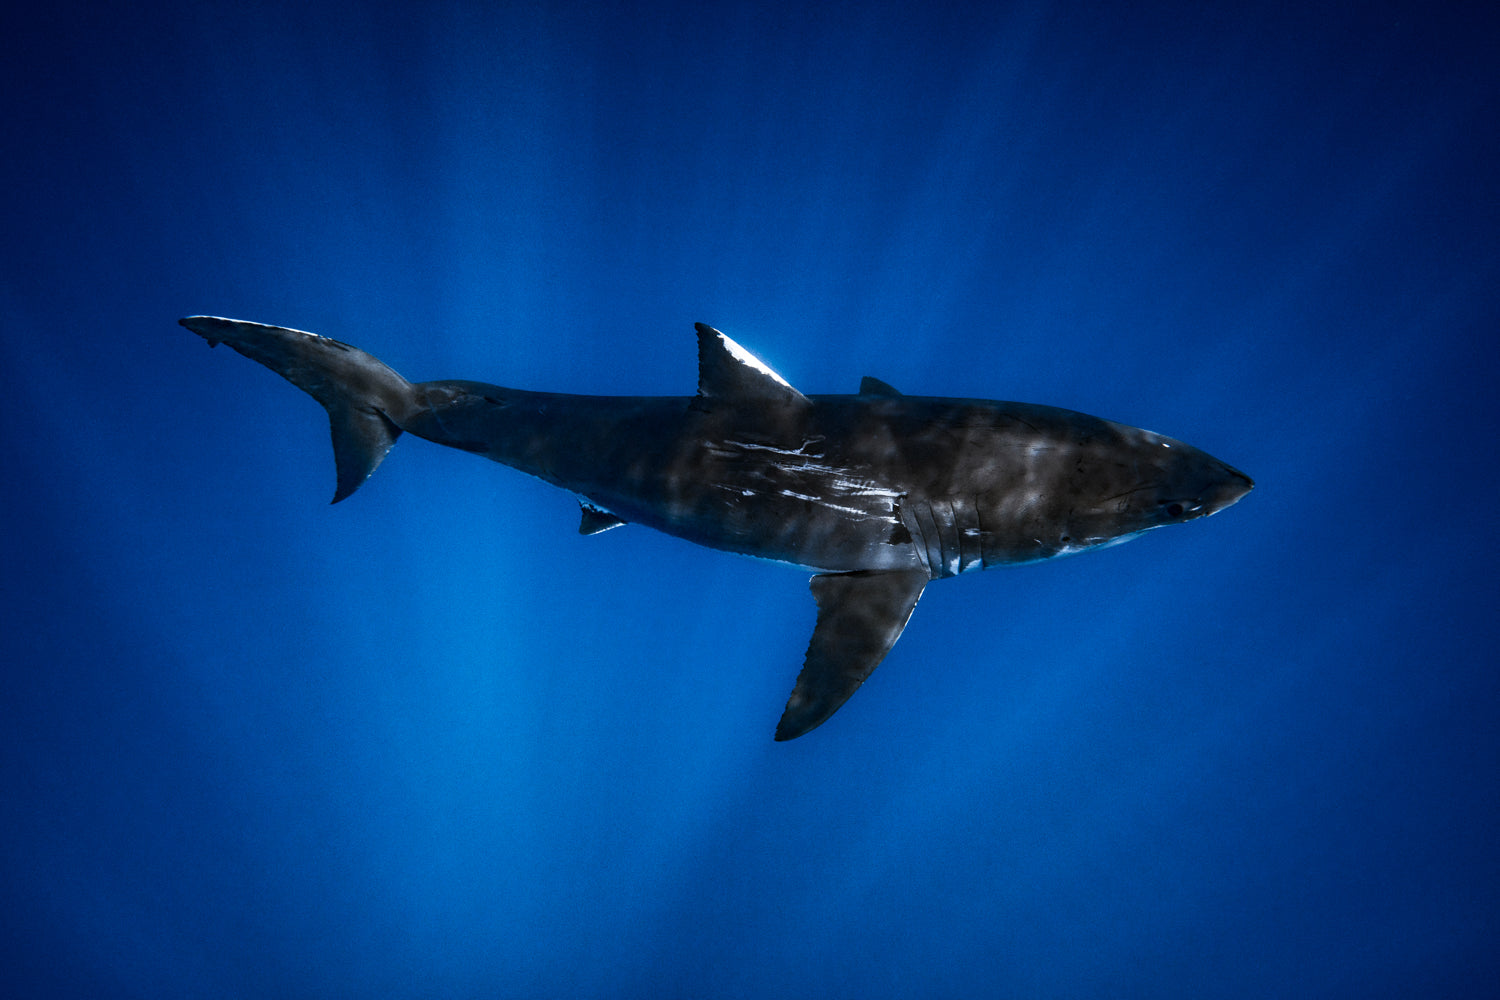 The body of a Great White Shark in the Deep Blue Sea